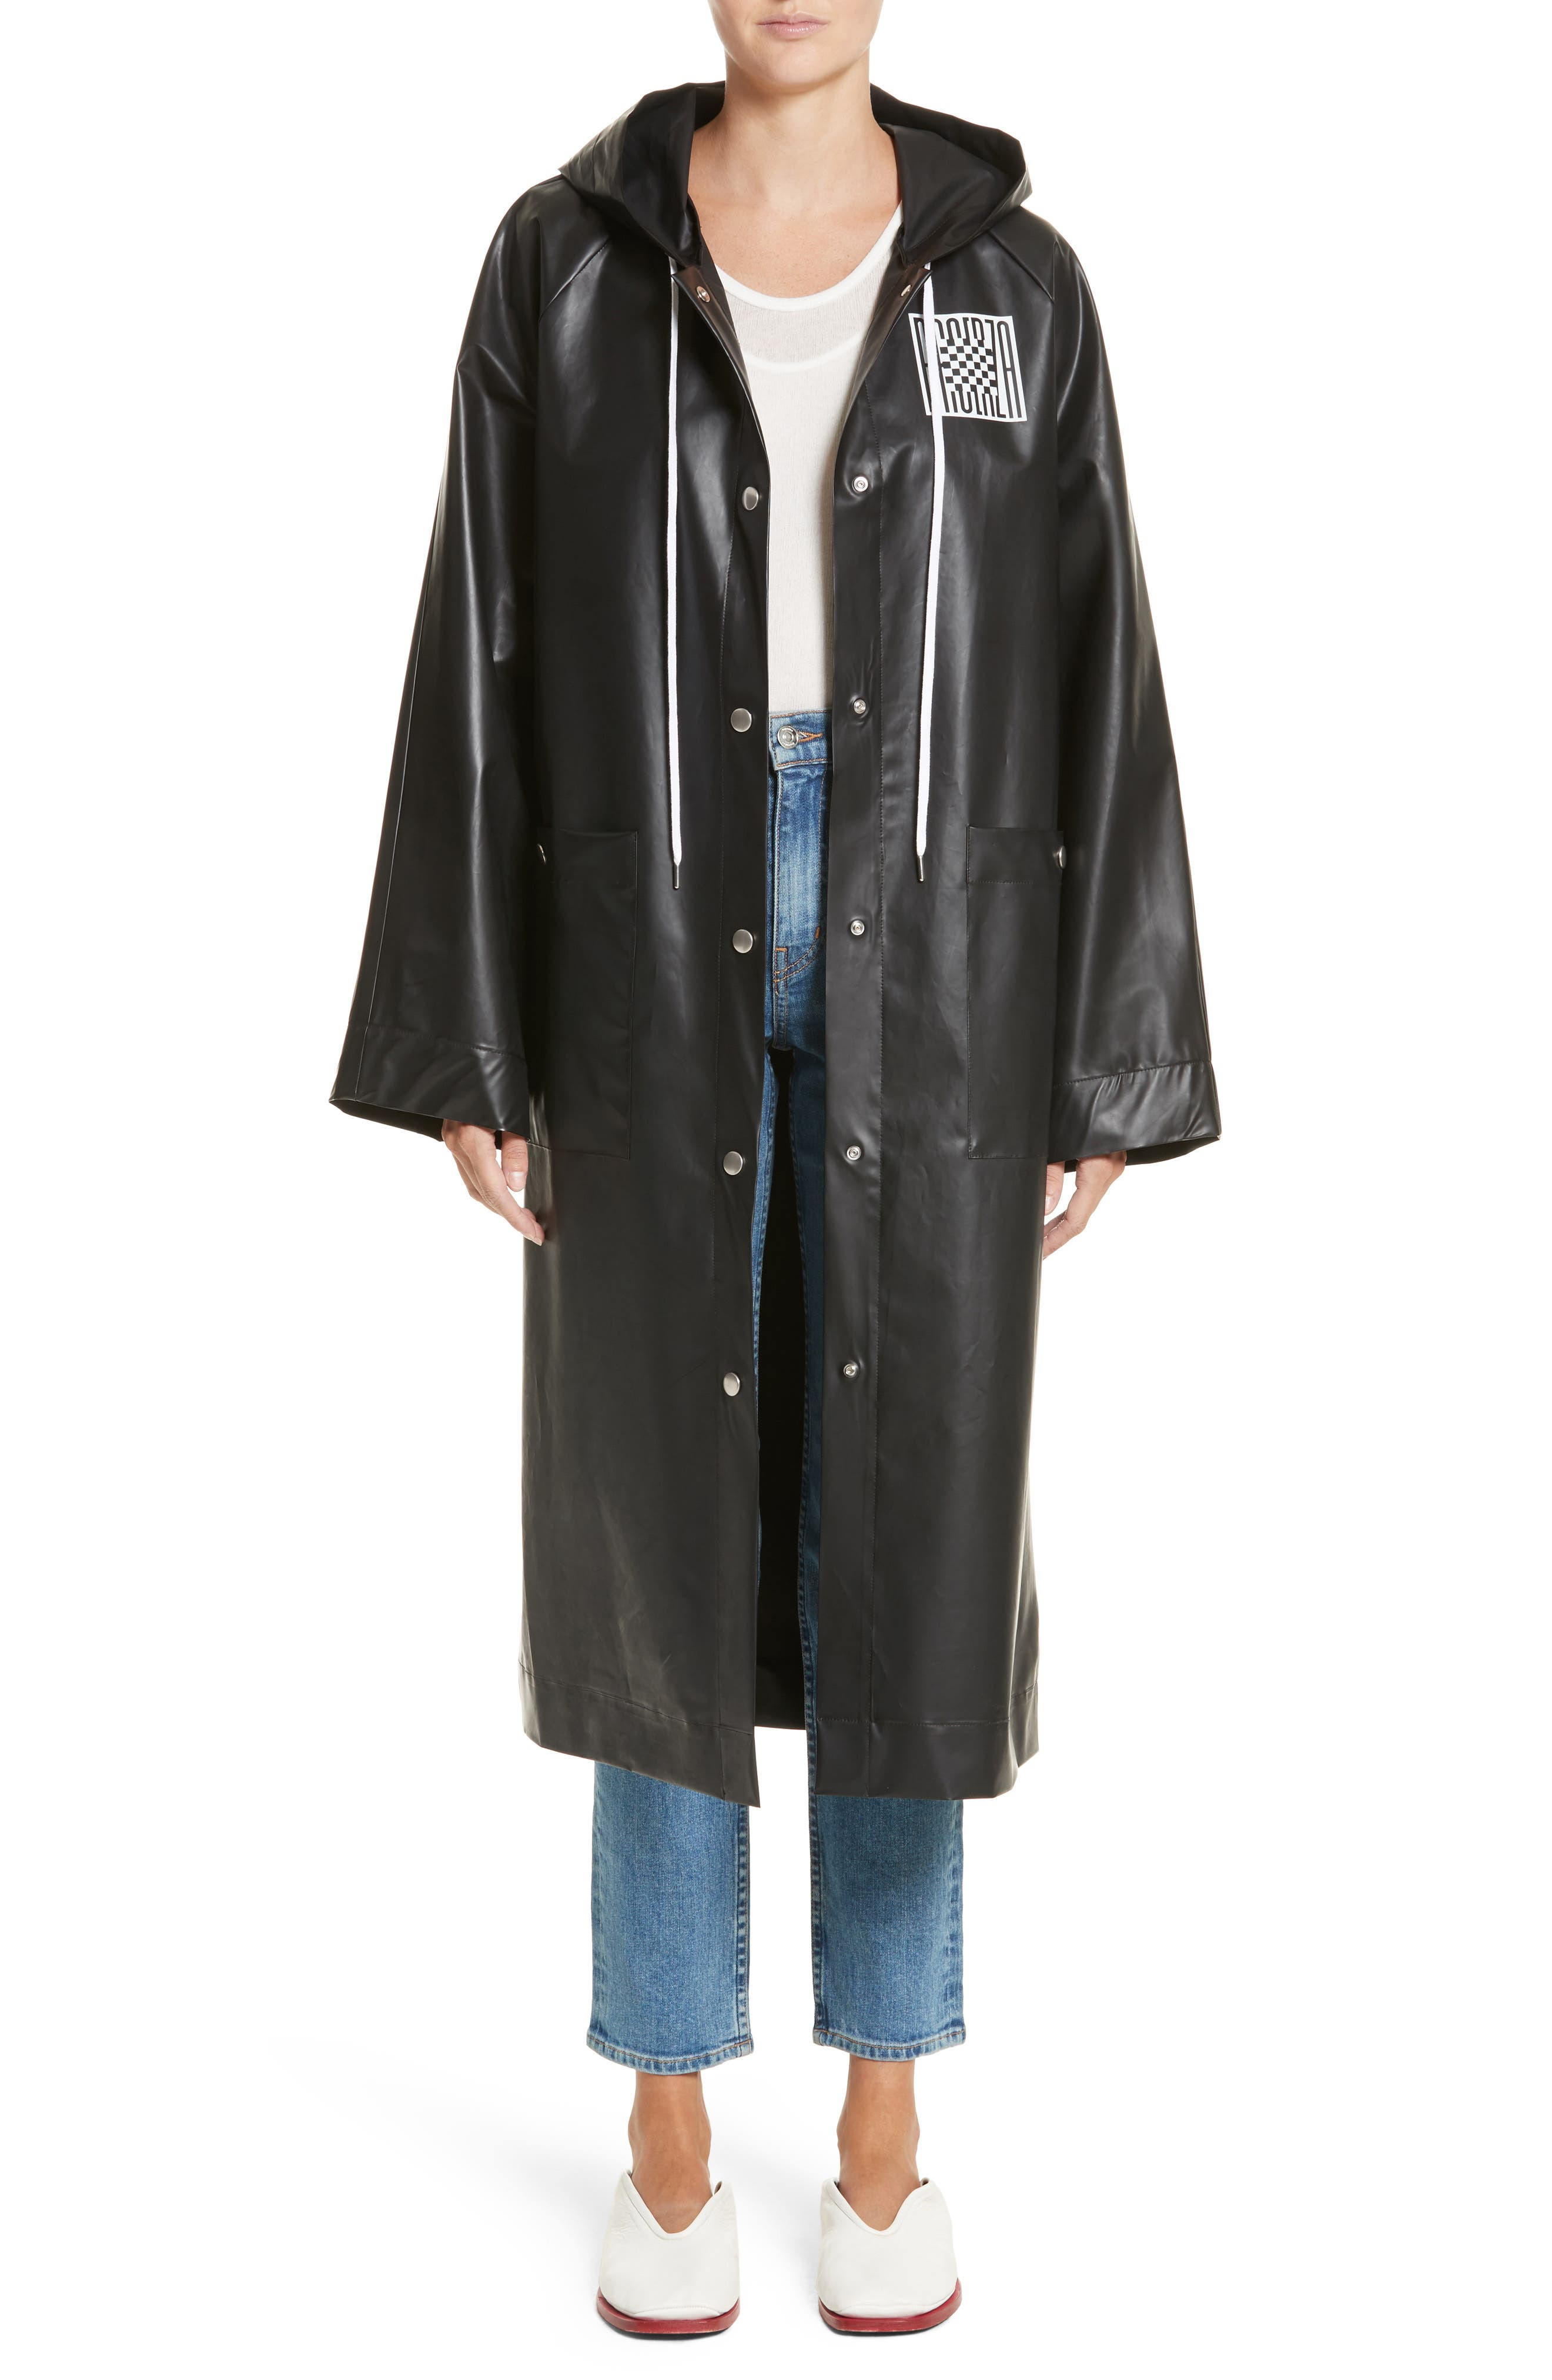 PSWL Graphic Raincoat,                         Main,                         color, 001